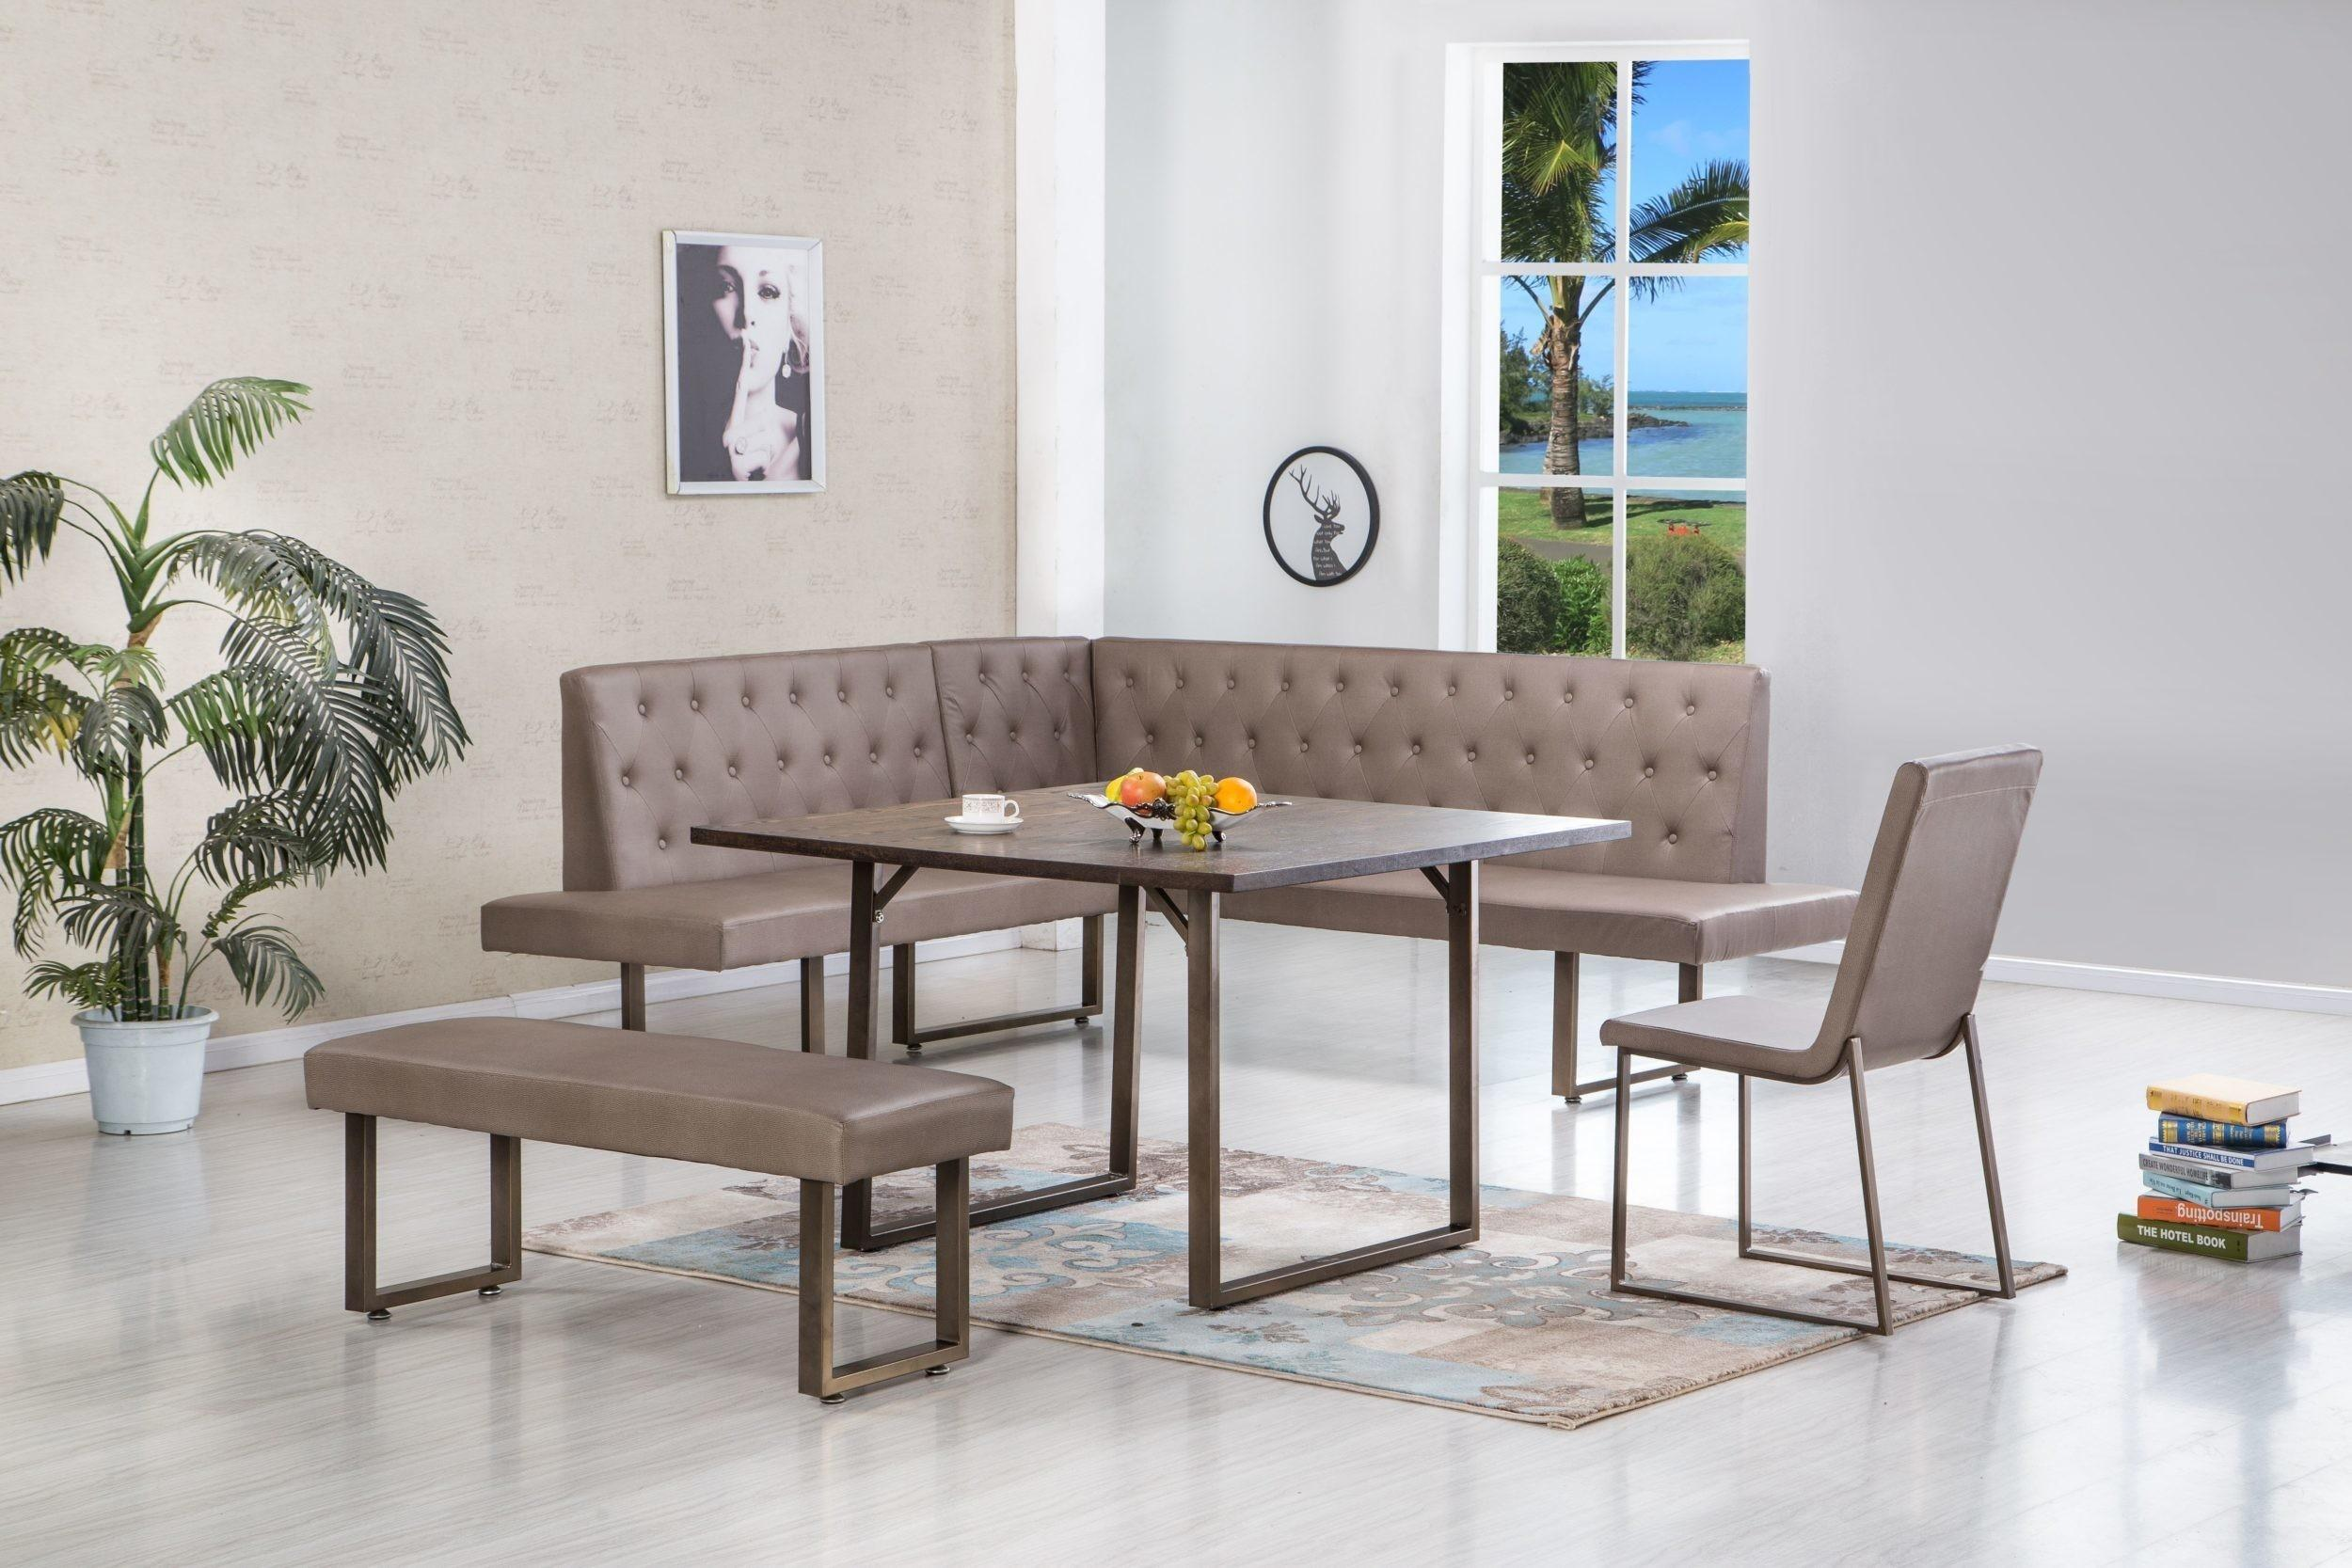 Ingenious Breakfast Nook Furniture Sets That Provide Comfort And Joy In 2020 Photos Decoratorist